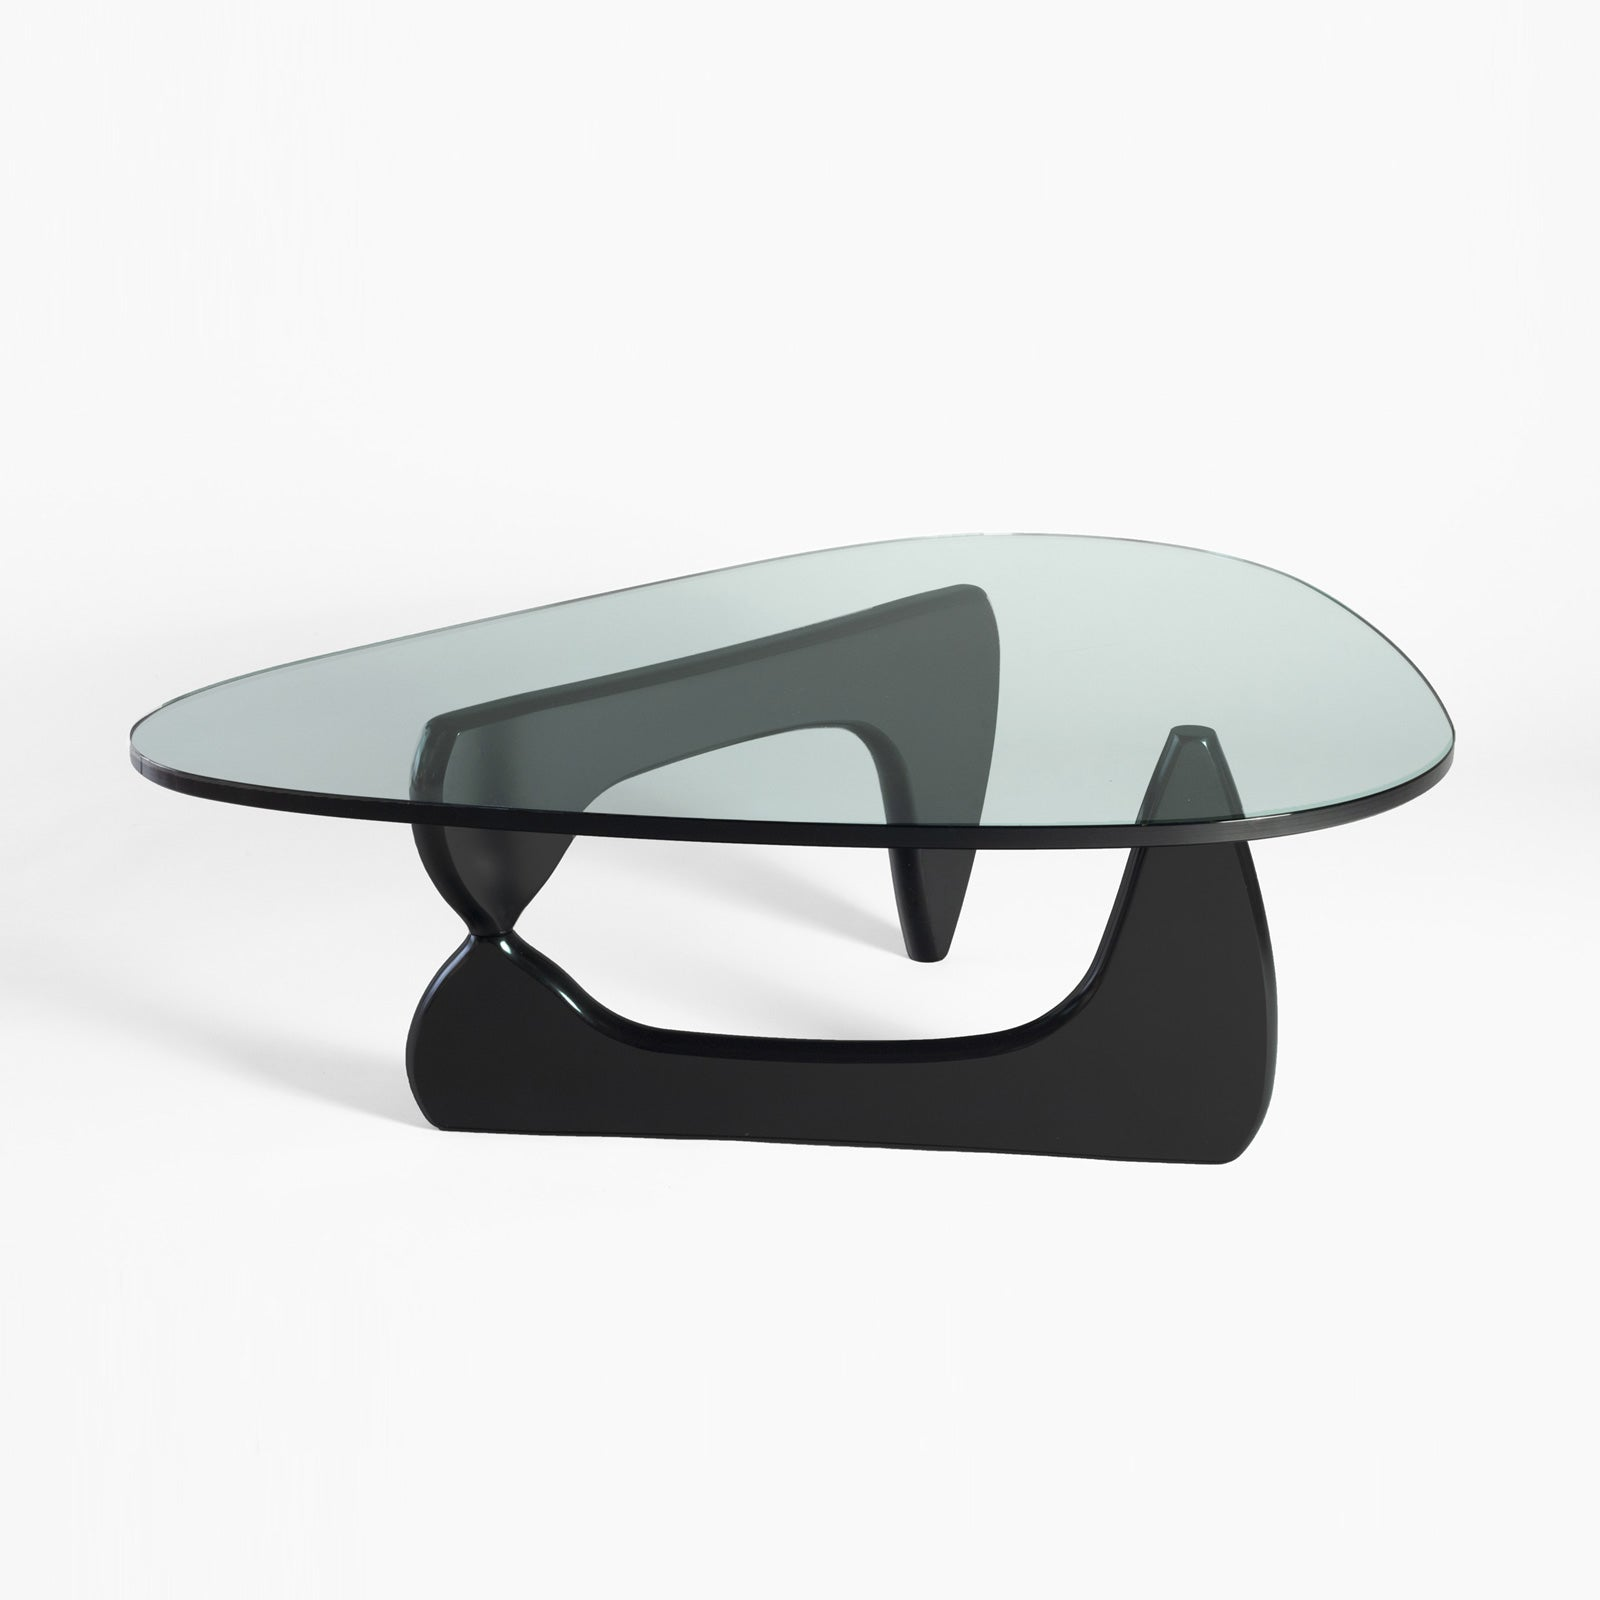 Noguchi Coffee Table, Black